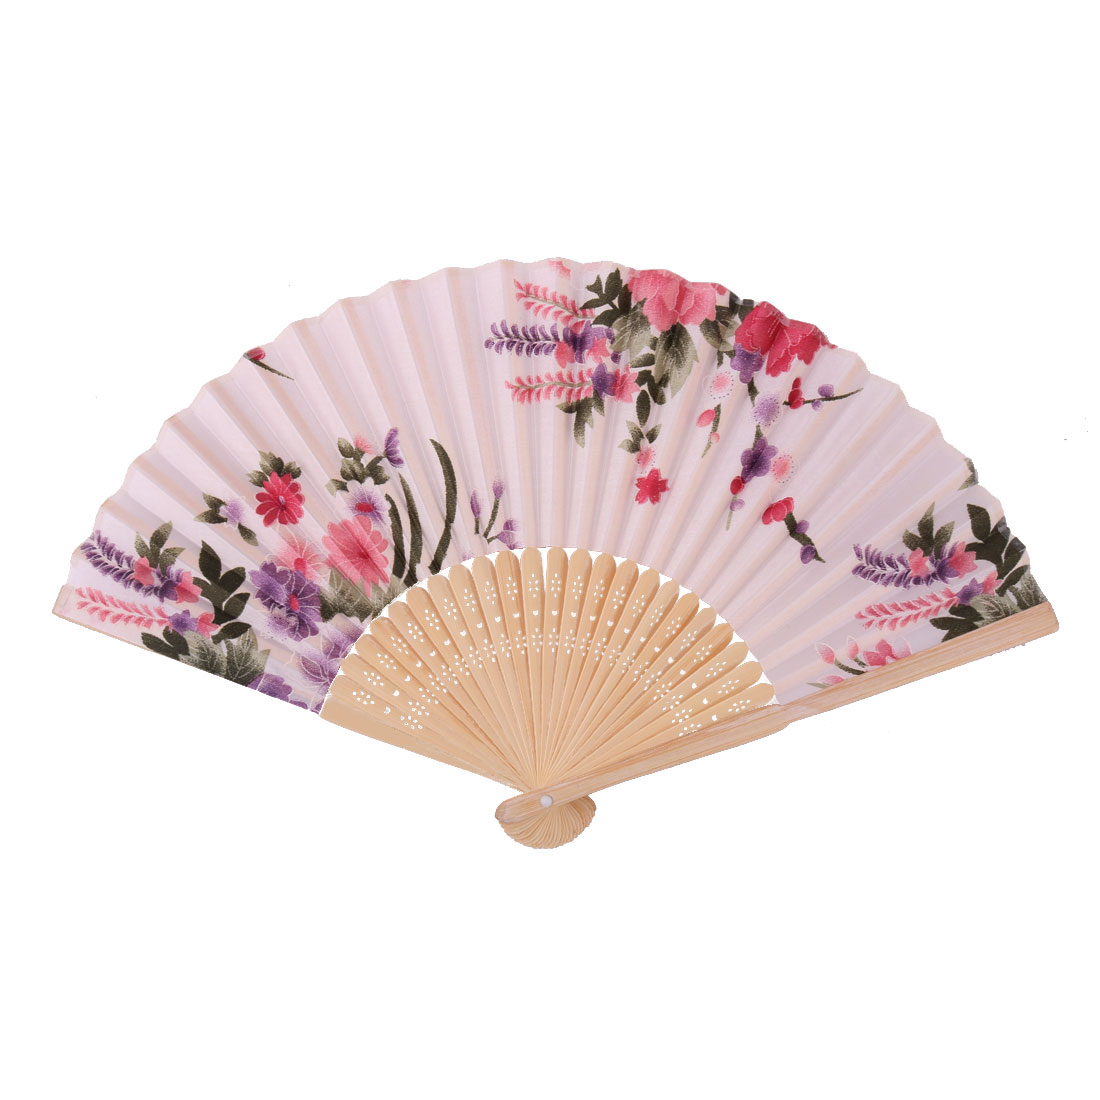 Summer Party Bamboo Frame Flower Pattern Decorative Folding Dancing Hand Fan Colorful